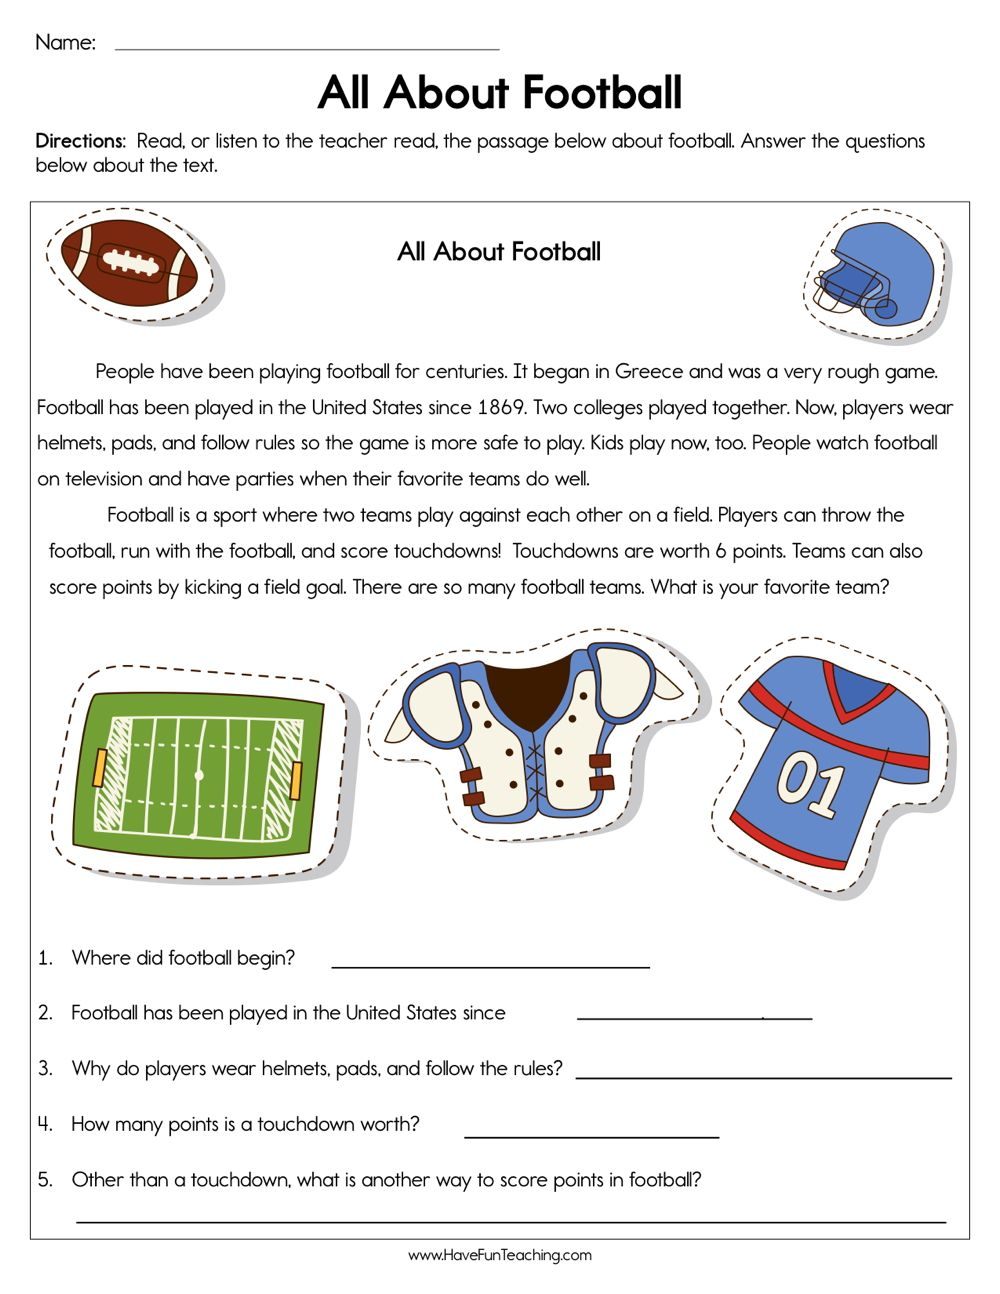 All About Football Worksheet Reading Comprehension Informational Text Graphic Organizer Comprehension Worksheets [ 1294 x 1000 Pixel ]